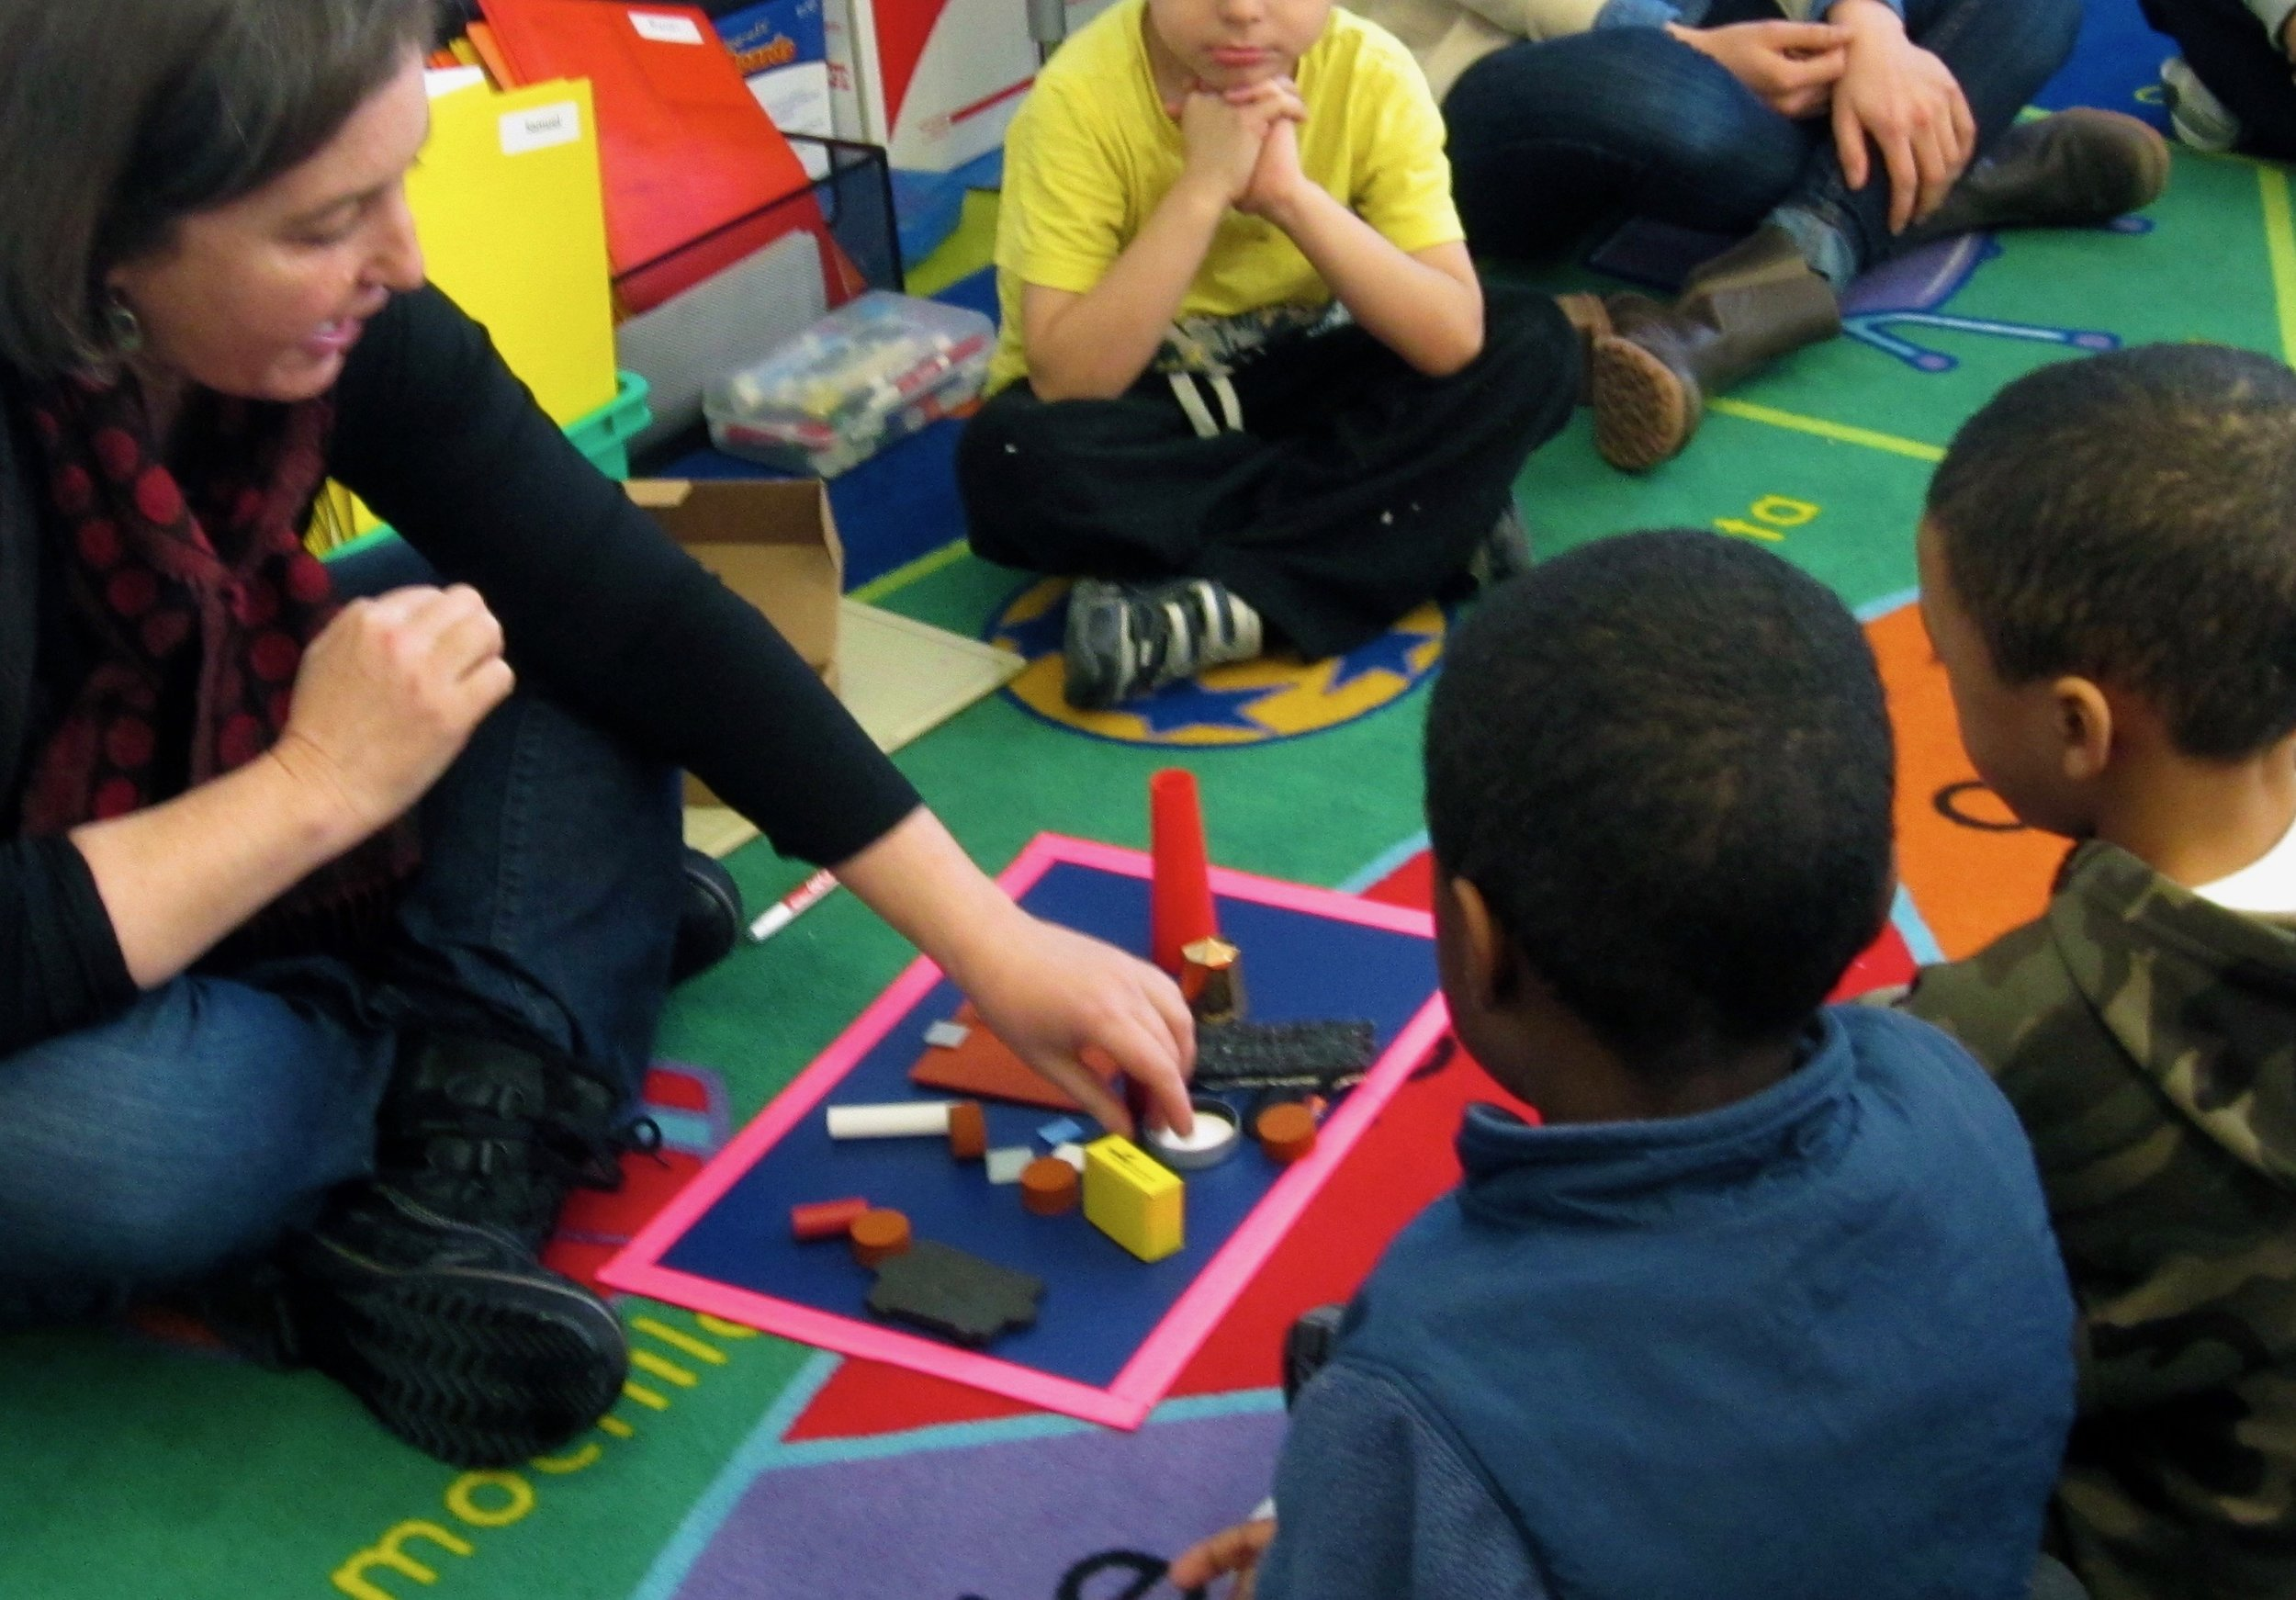 Modeling play & exploration for teachers & students sets all up for success